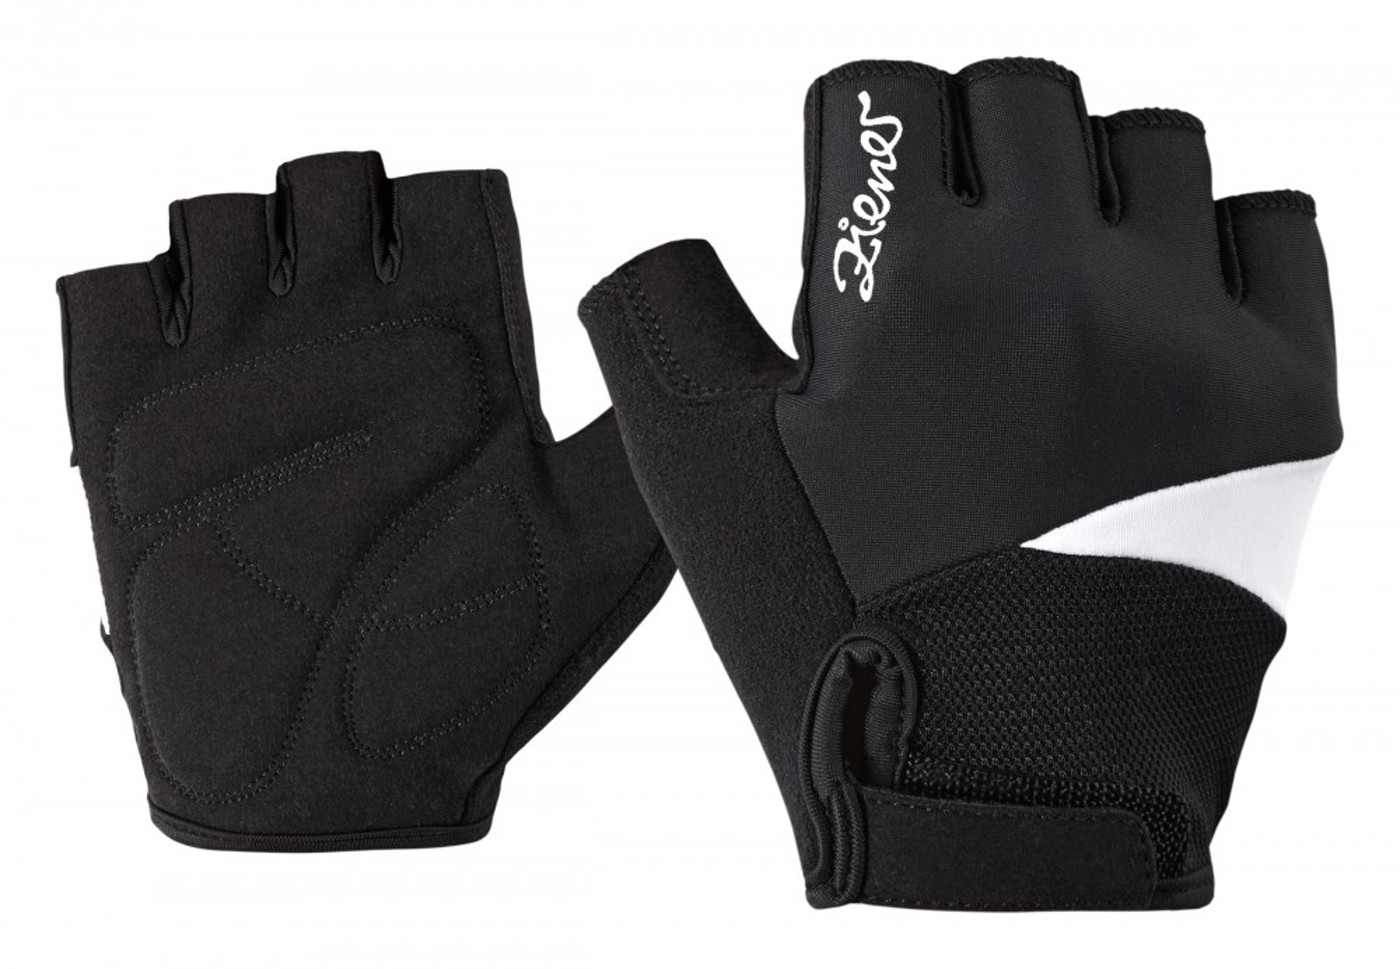 ZIENER CHRISA LADY bike glove - Damen